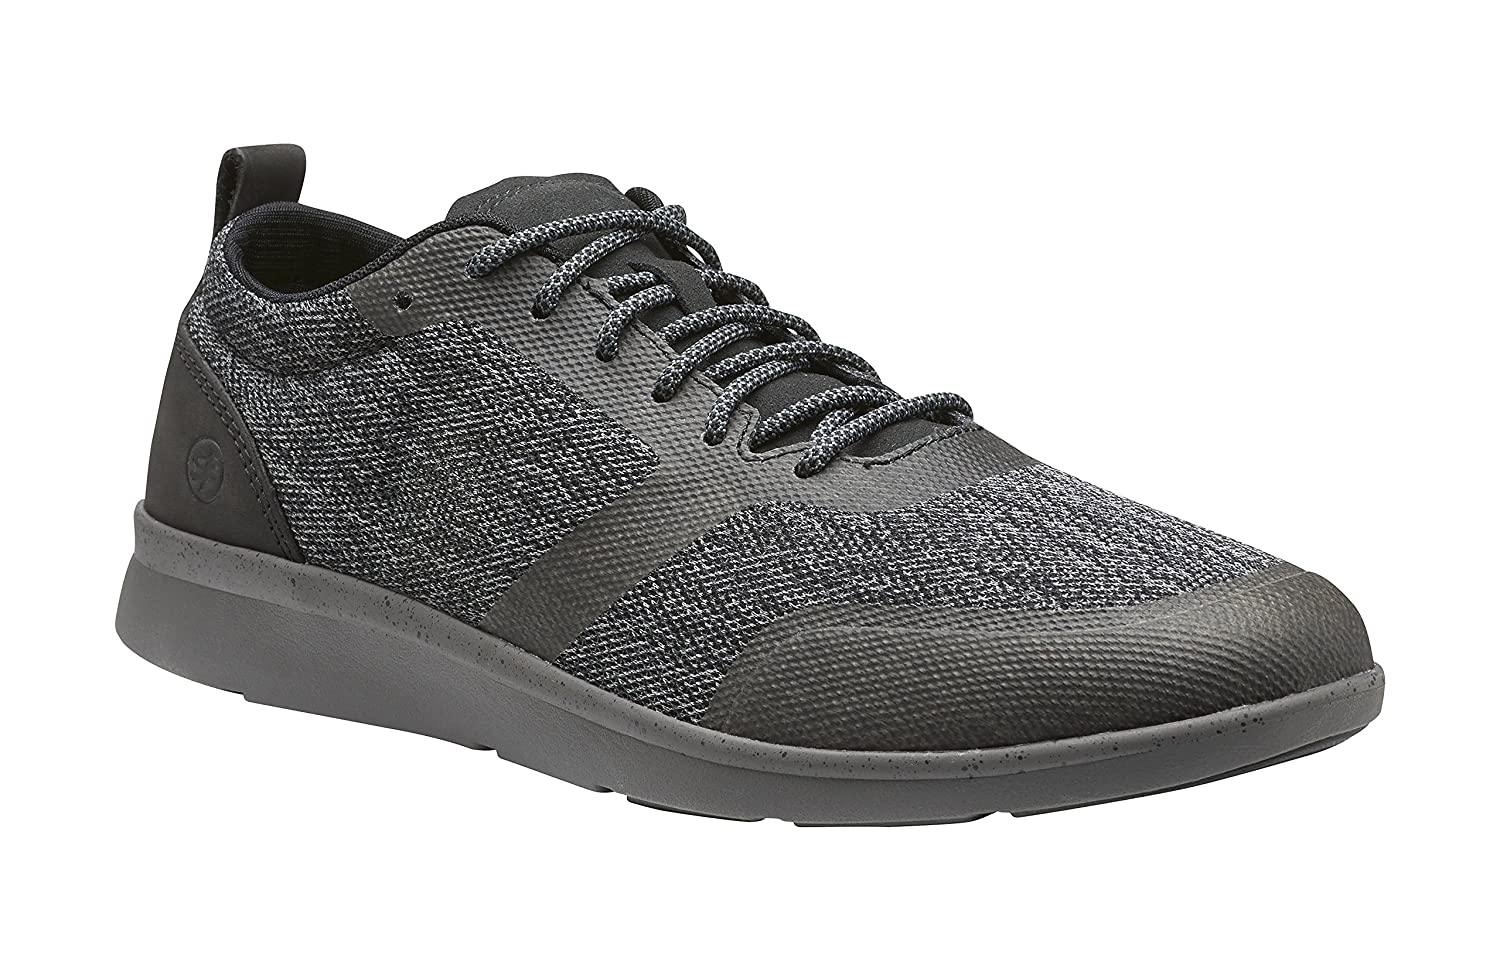 Superfeet Stuart MX Men's Crafted Sport Shoe 10 D(M) US|Black / Charcoal Gray